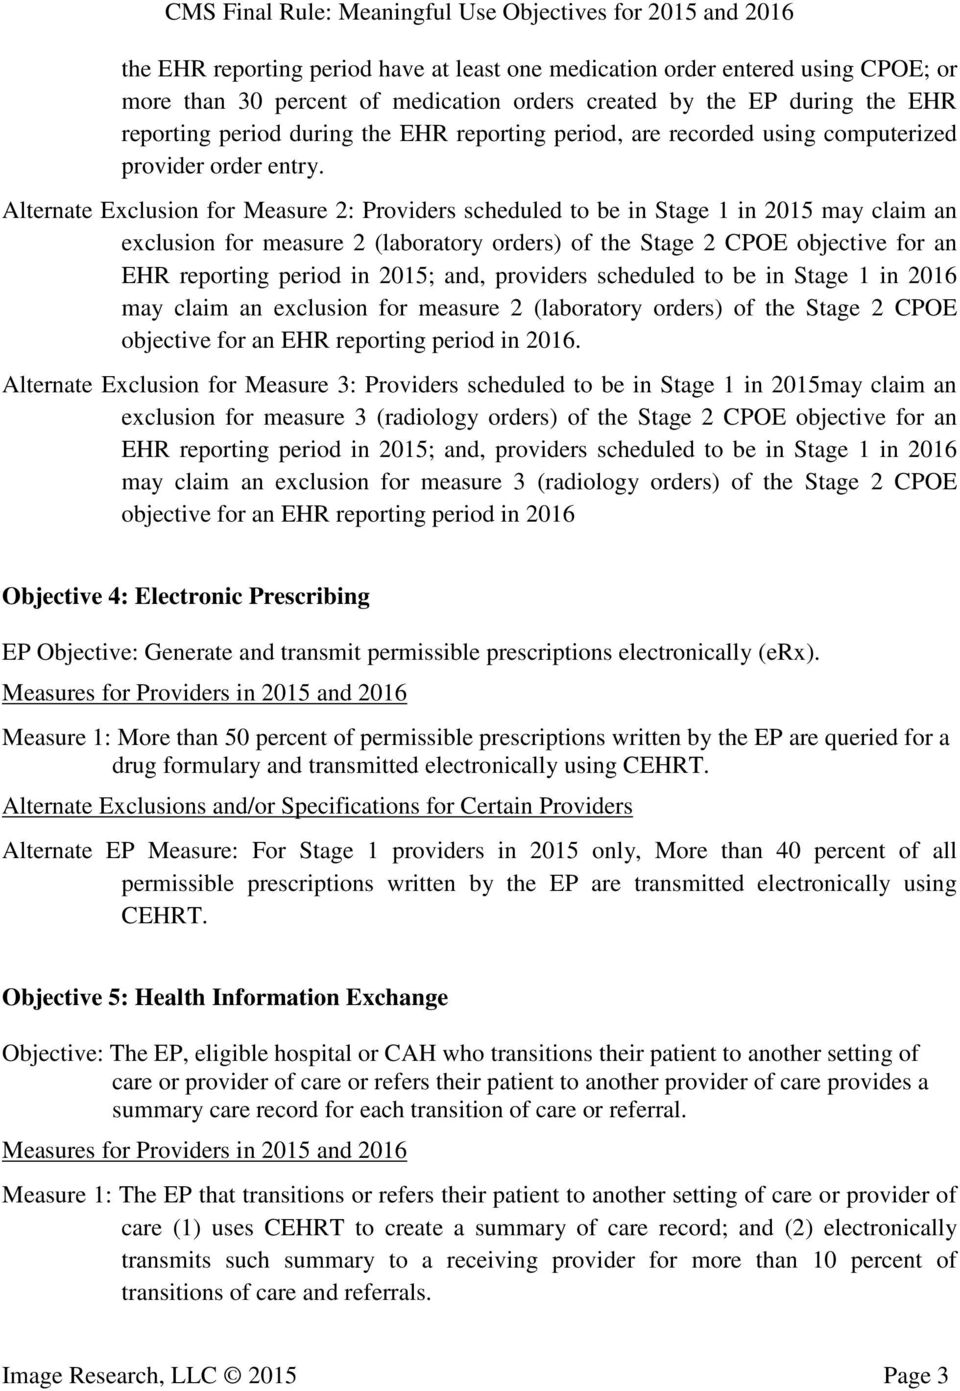 Alternate Exclusion for Measure 2: Providers scheduled to be in Stage 1 in 2015 may claim an exclusion for measure 2 (laboratory orders) of the Stage 2 CPOE objective for an EHR reporting period in